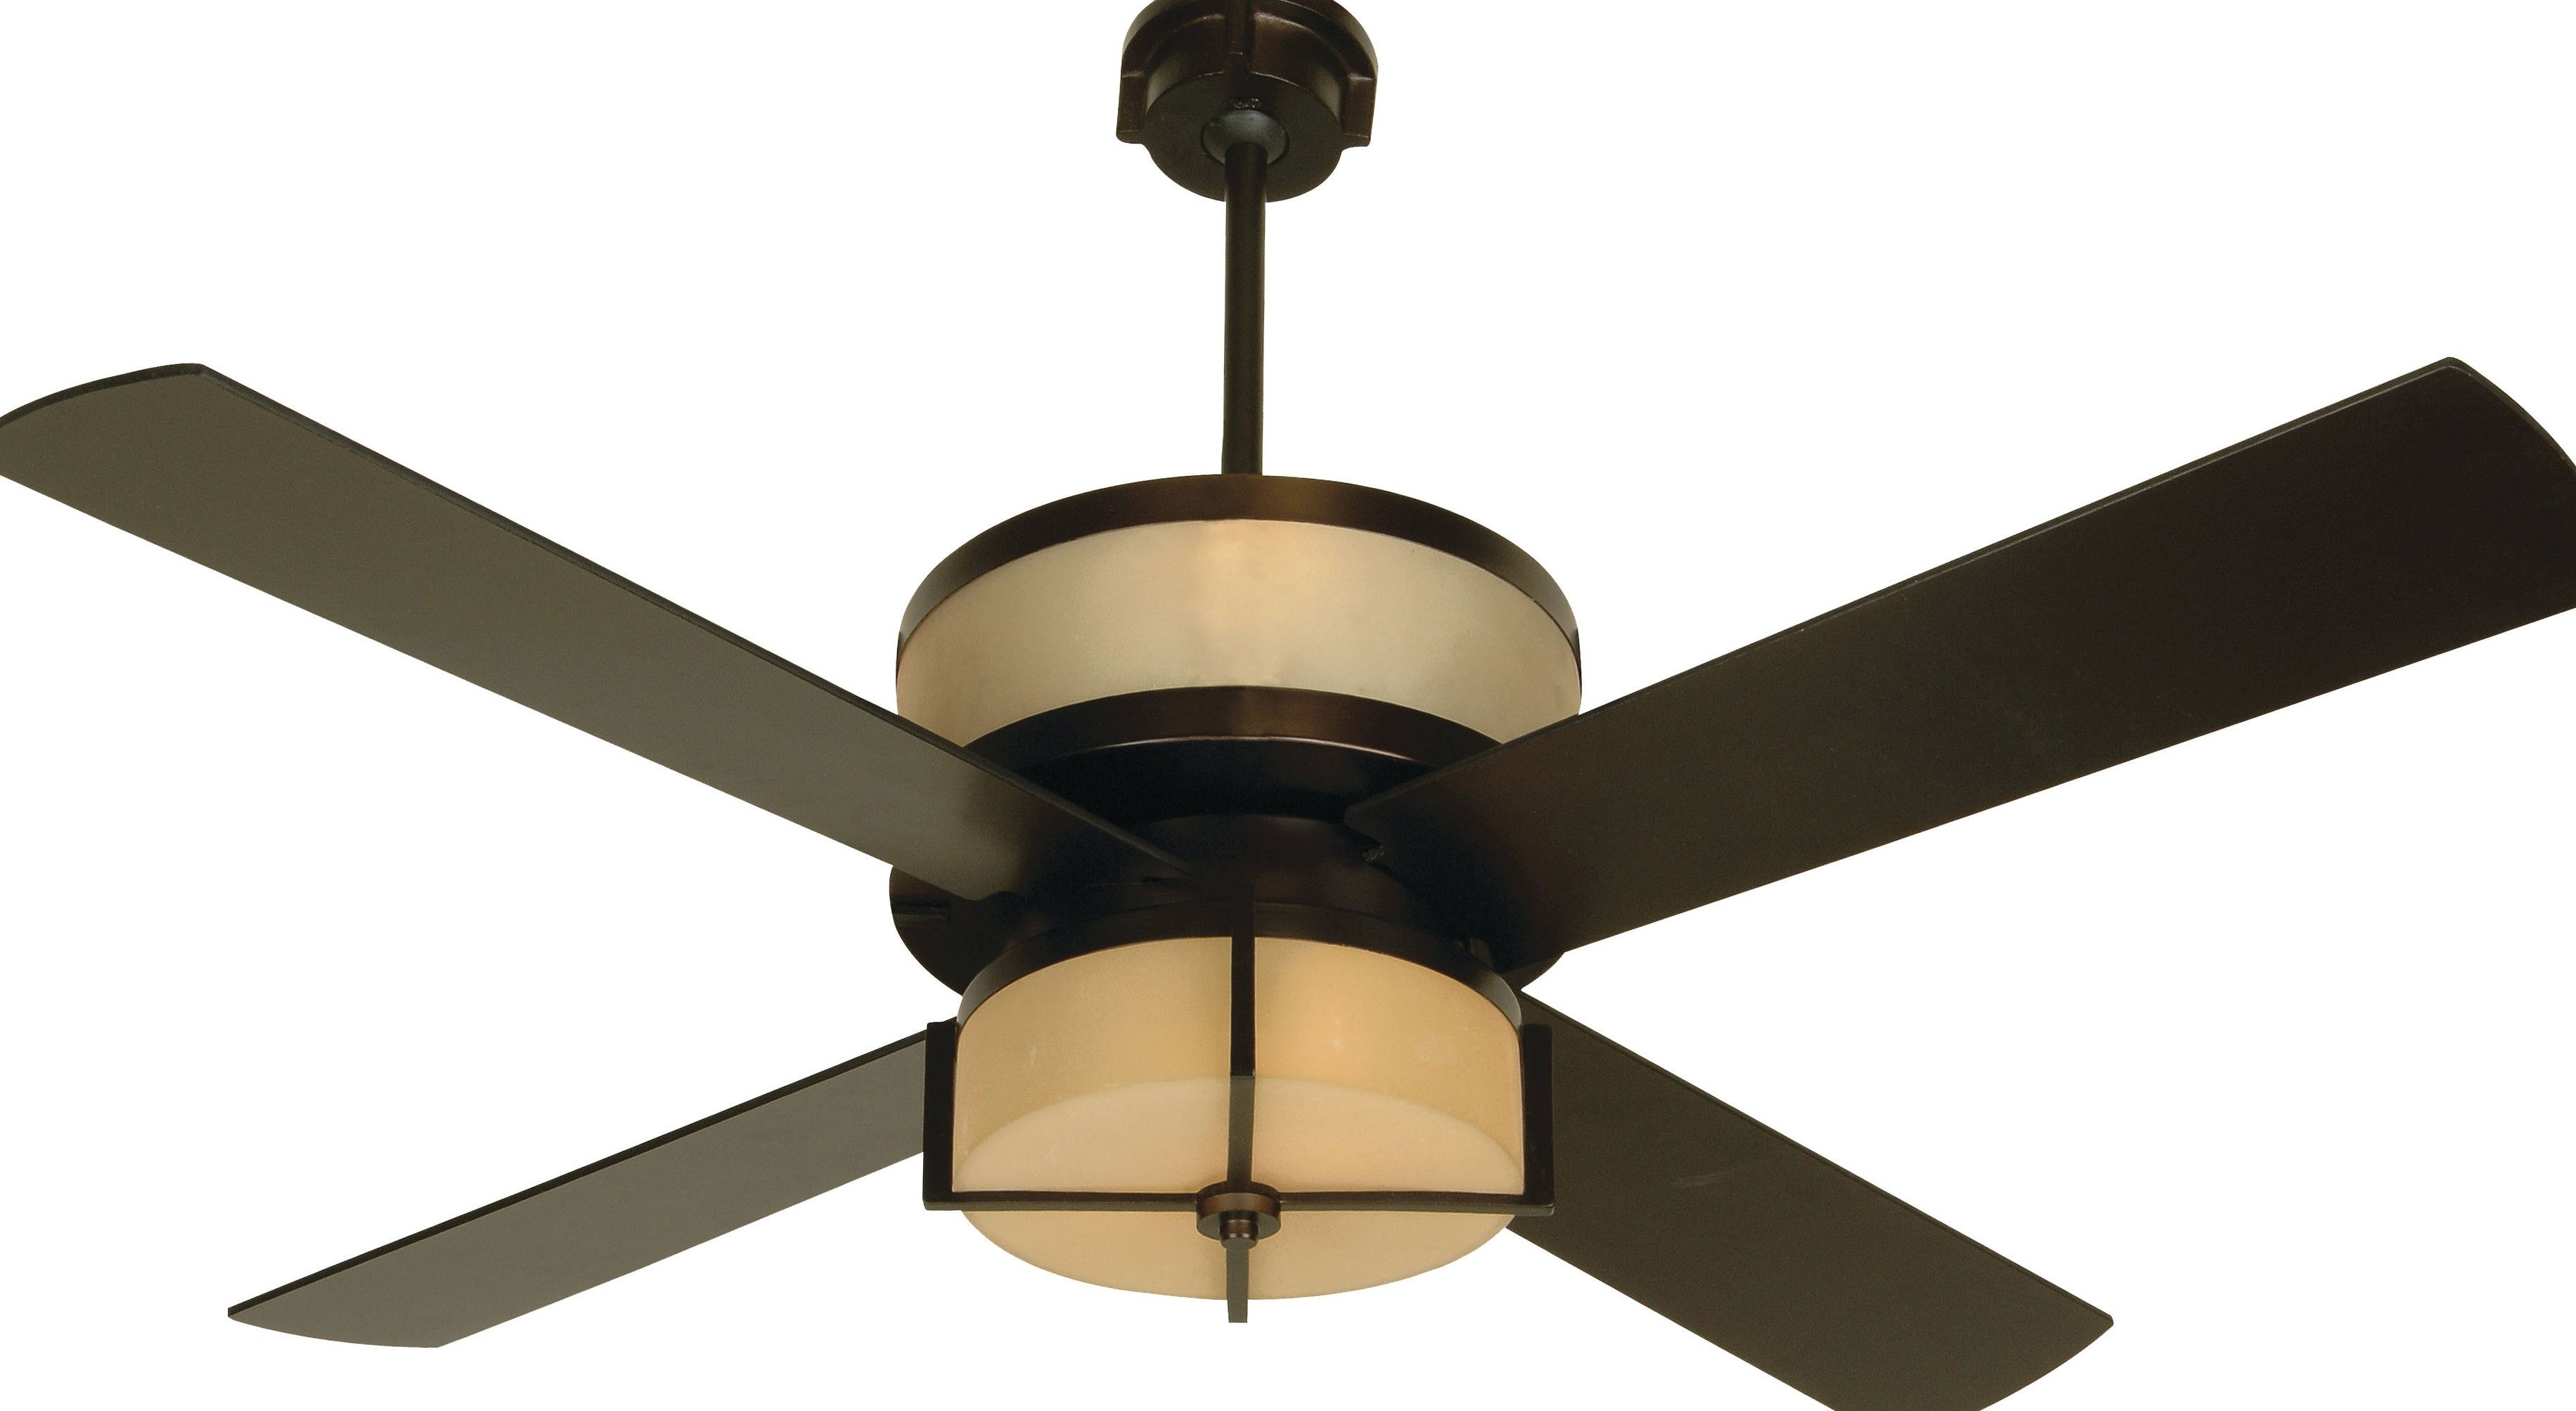 Outdoor Ceiling Fans With Remote Control Lights Within Most Current Incredible Ceiling Fan Design Lumos Havells Rectangular Black Remote (View 8 of 20)